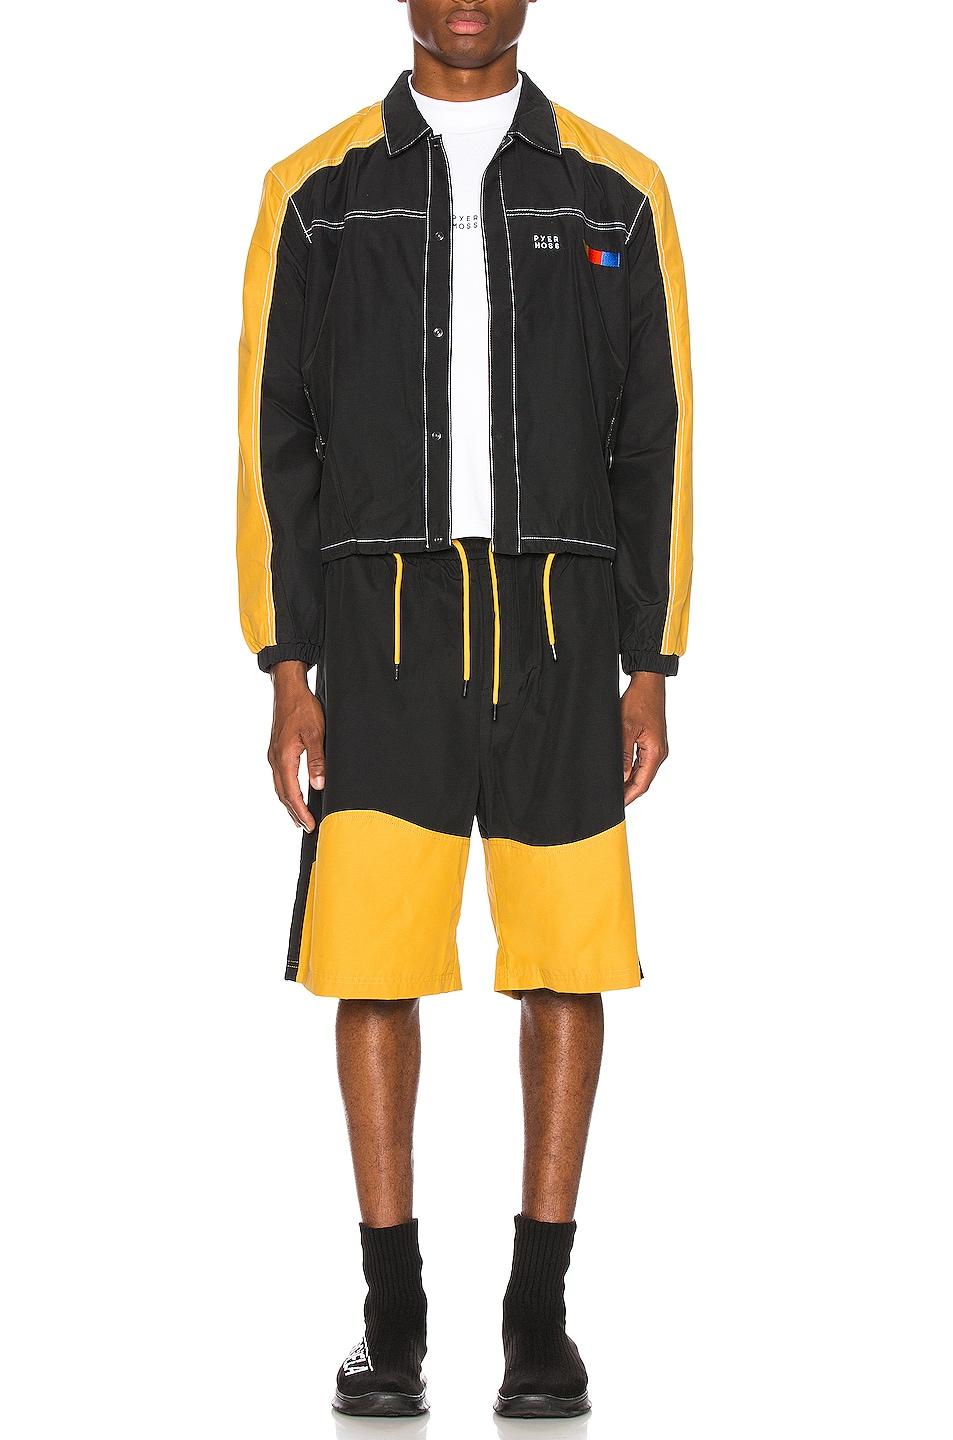 Image 6 of Pyer Moss Signature Coaches Jacket in Black & Yellow